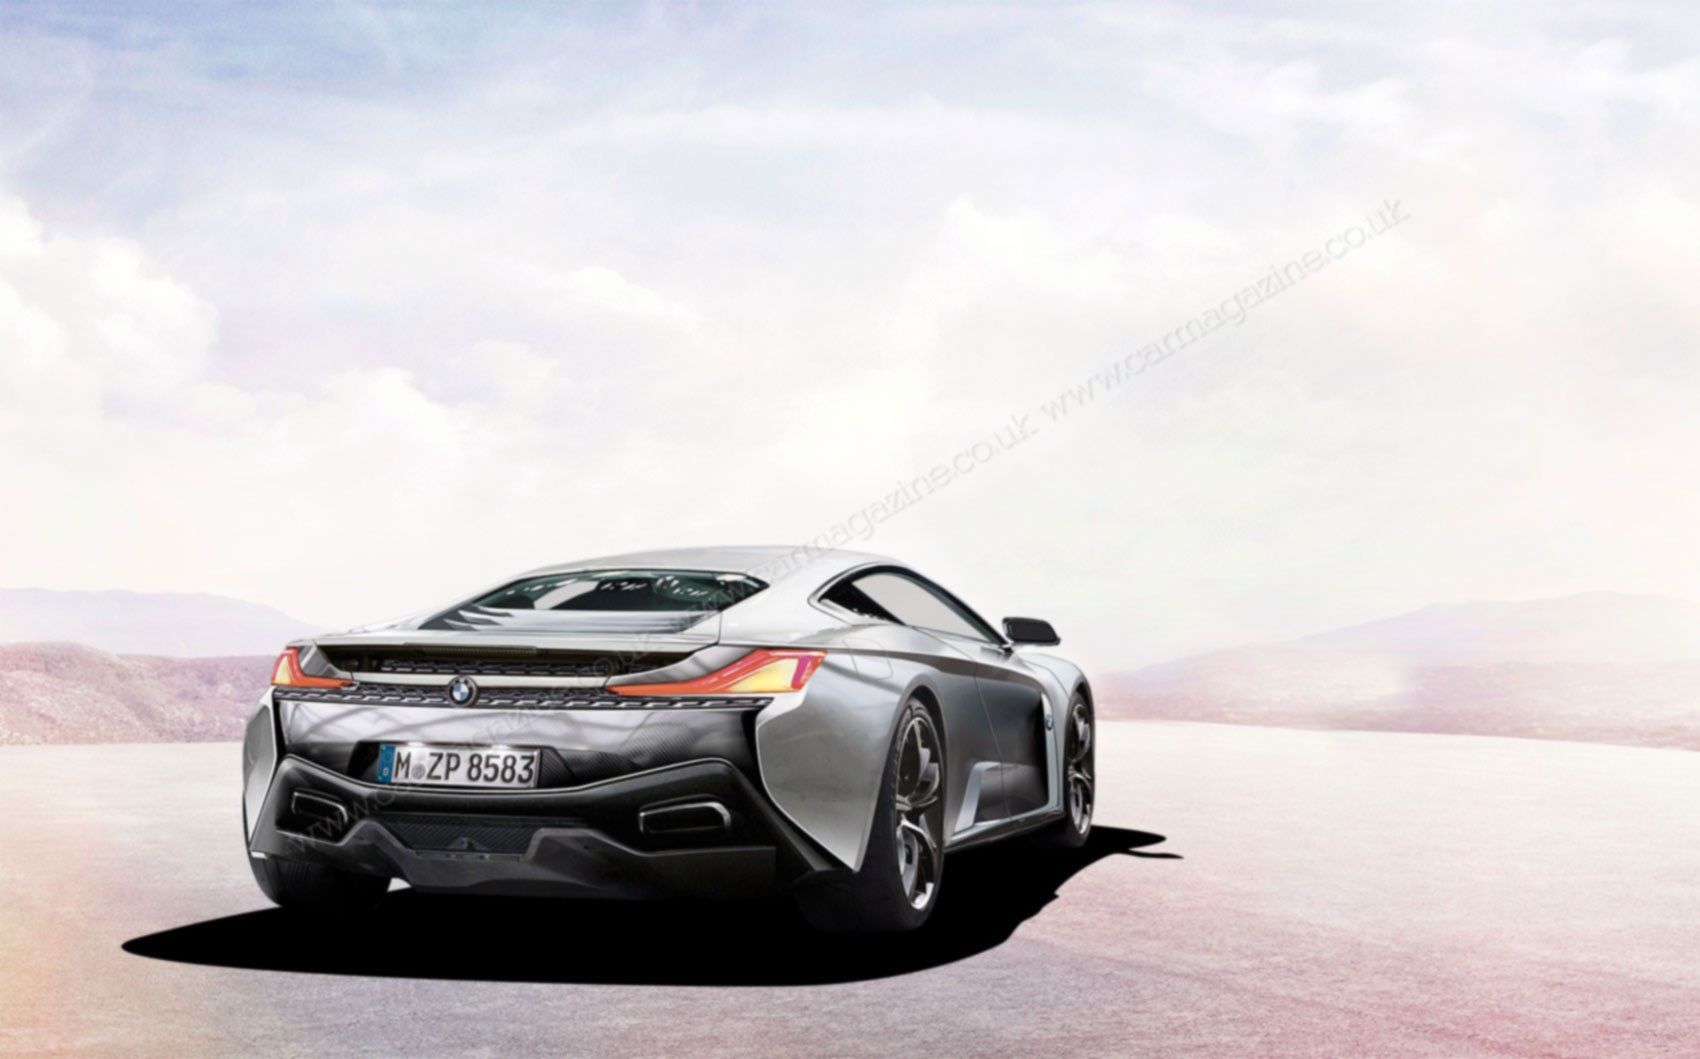 Sensation! McLaren To Build BMW Supercar, CAR+ October